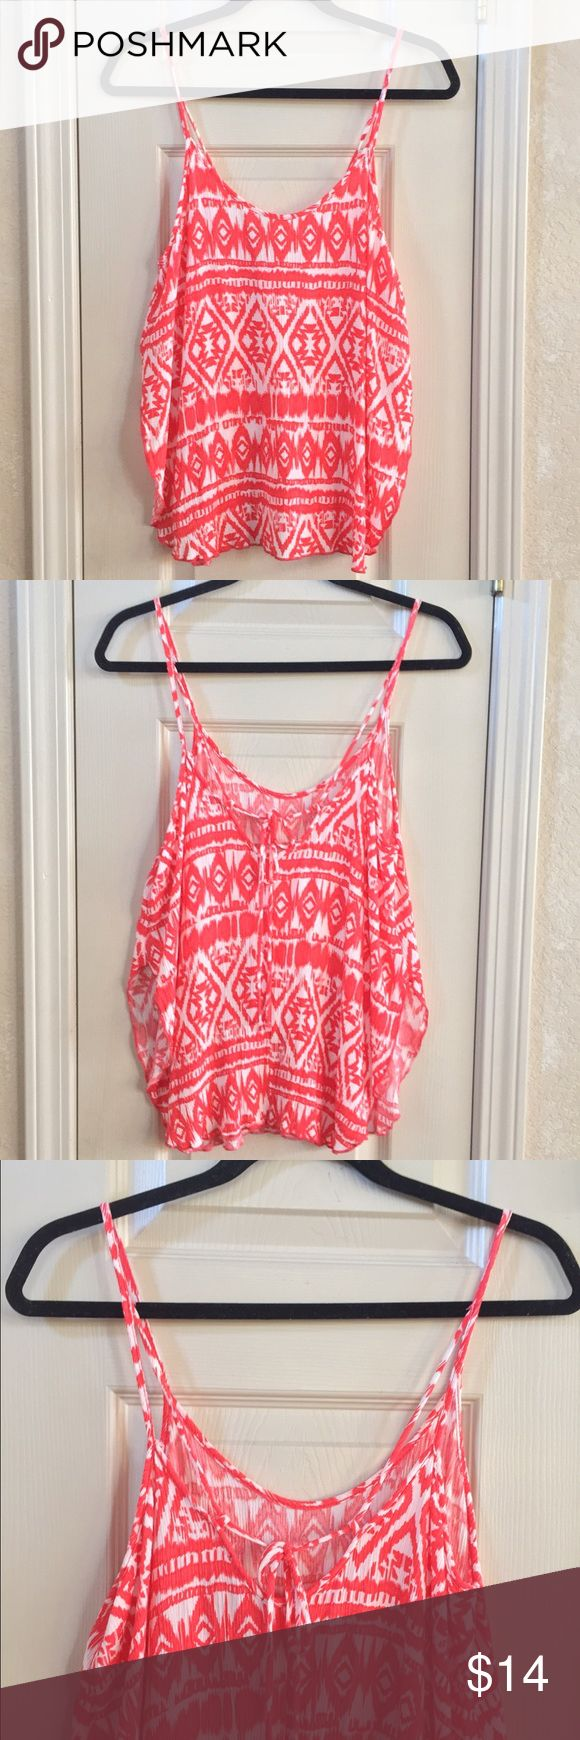 Pink Tribal Print Tank Tribal print tank top with slits on the sides. 100% polyester. Persaya Tops Tank Tops